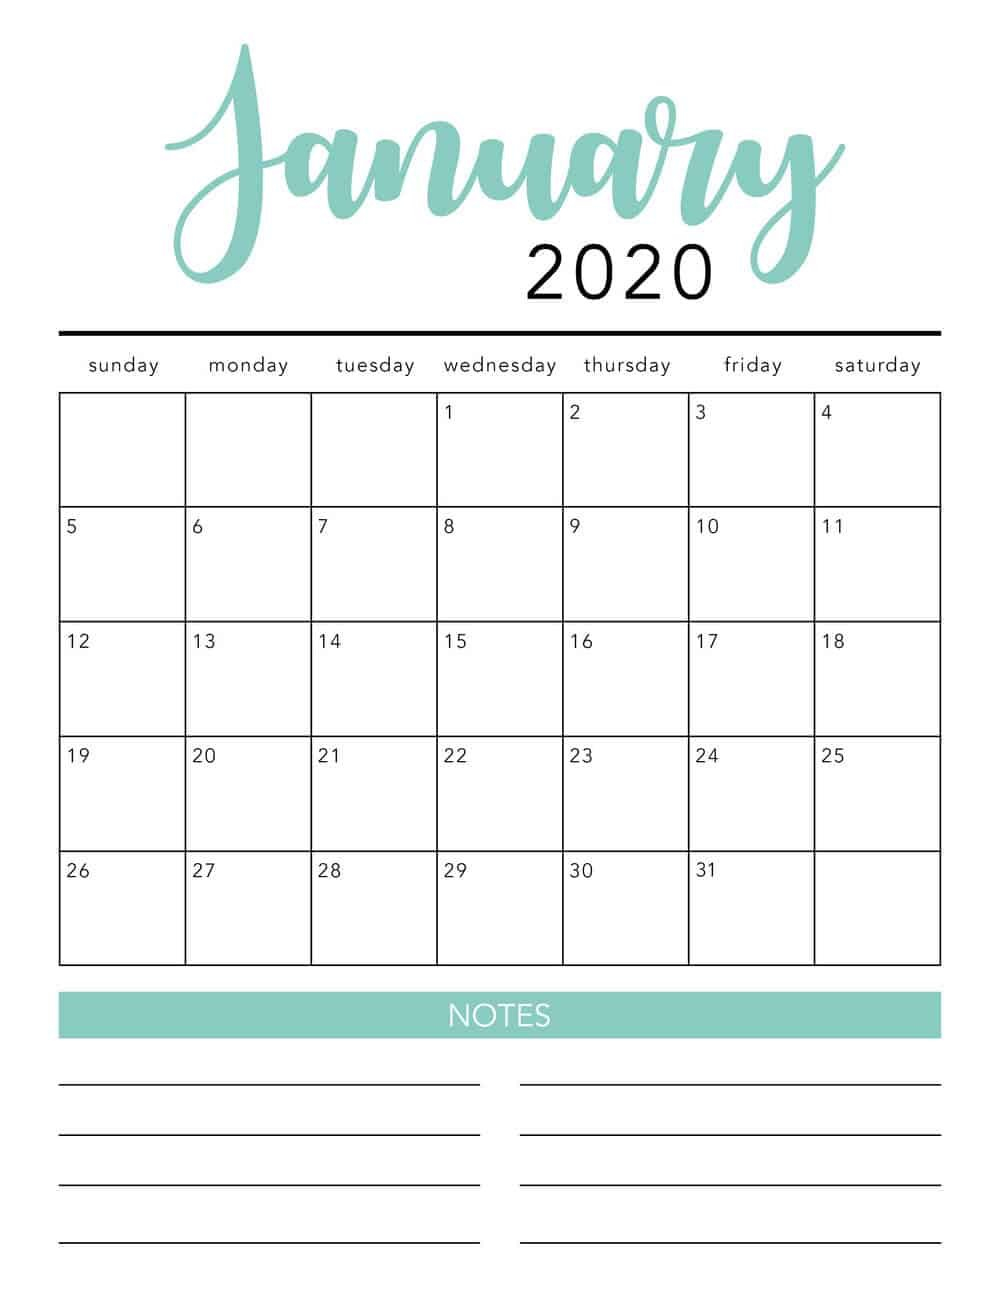 Free 2020 Printable Calendar Template (2 Colors!) - I 8X5 Monthly Calendar Print Outs